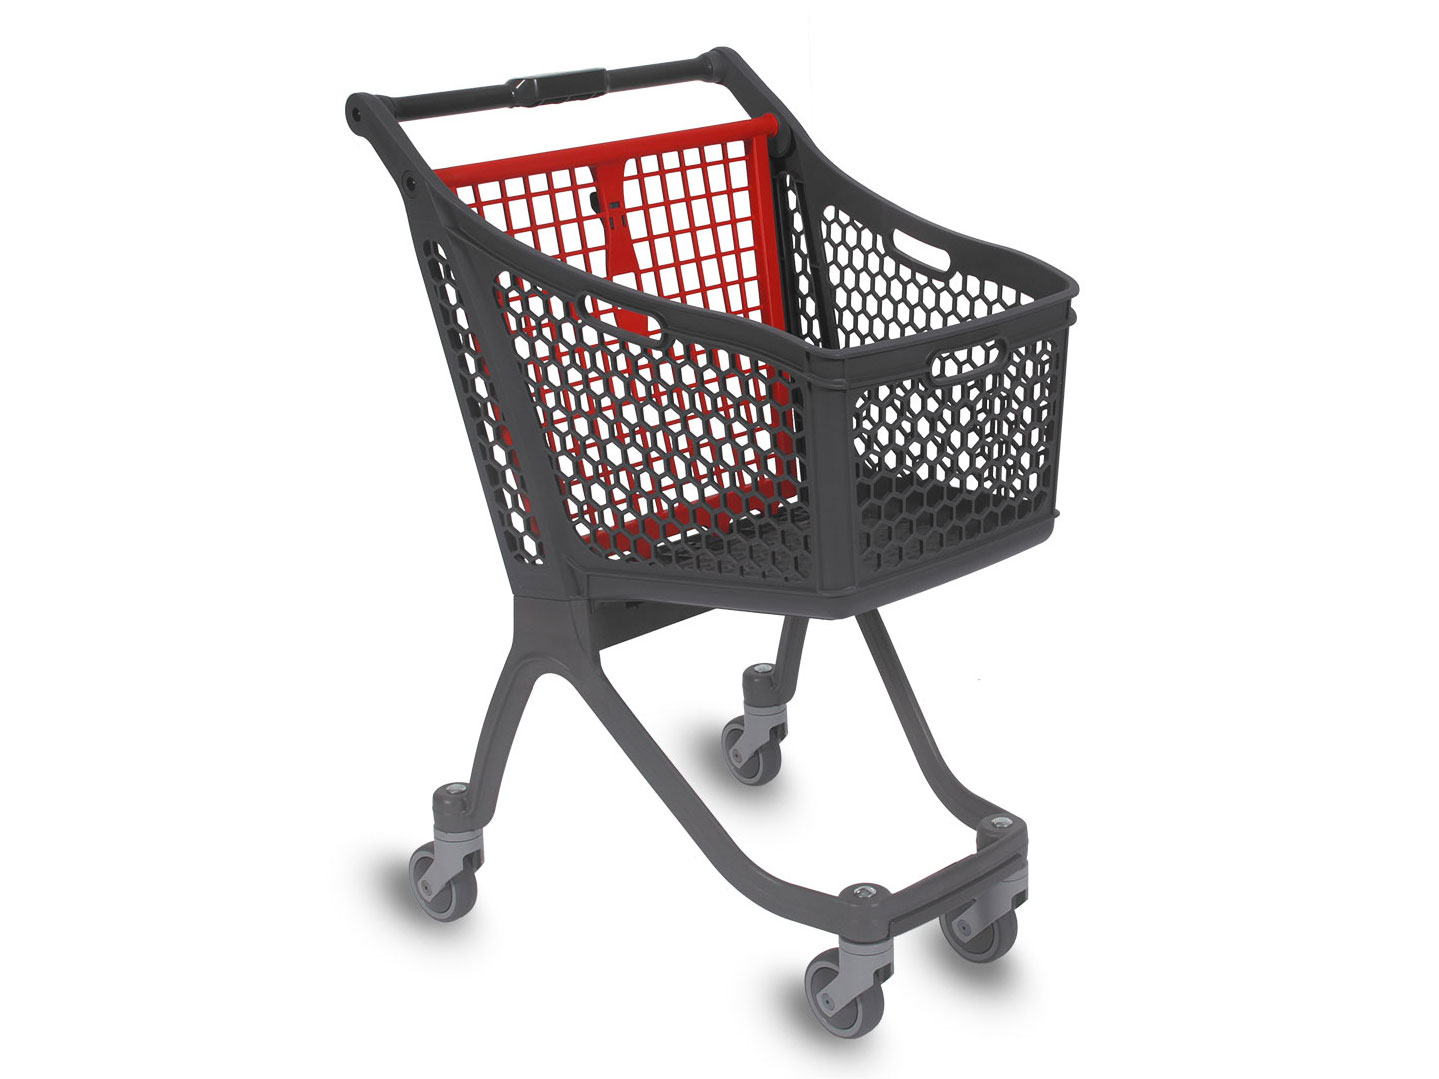 Basket trolley of the spanish company Polycart, an alternative to the supermarket basket